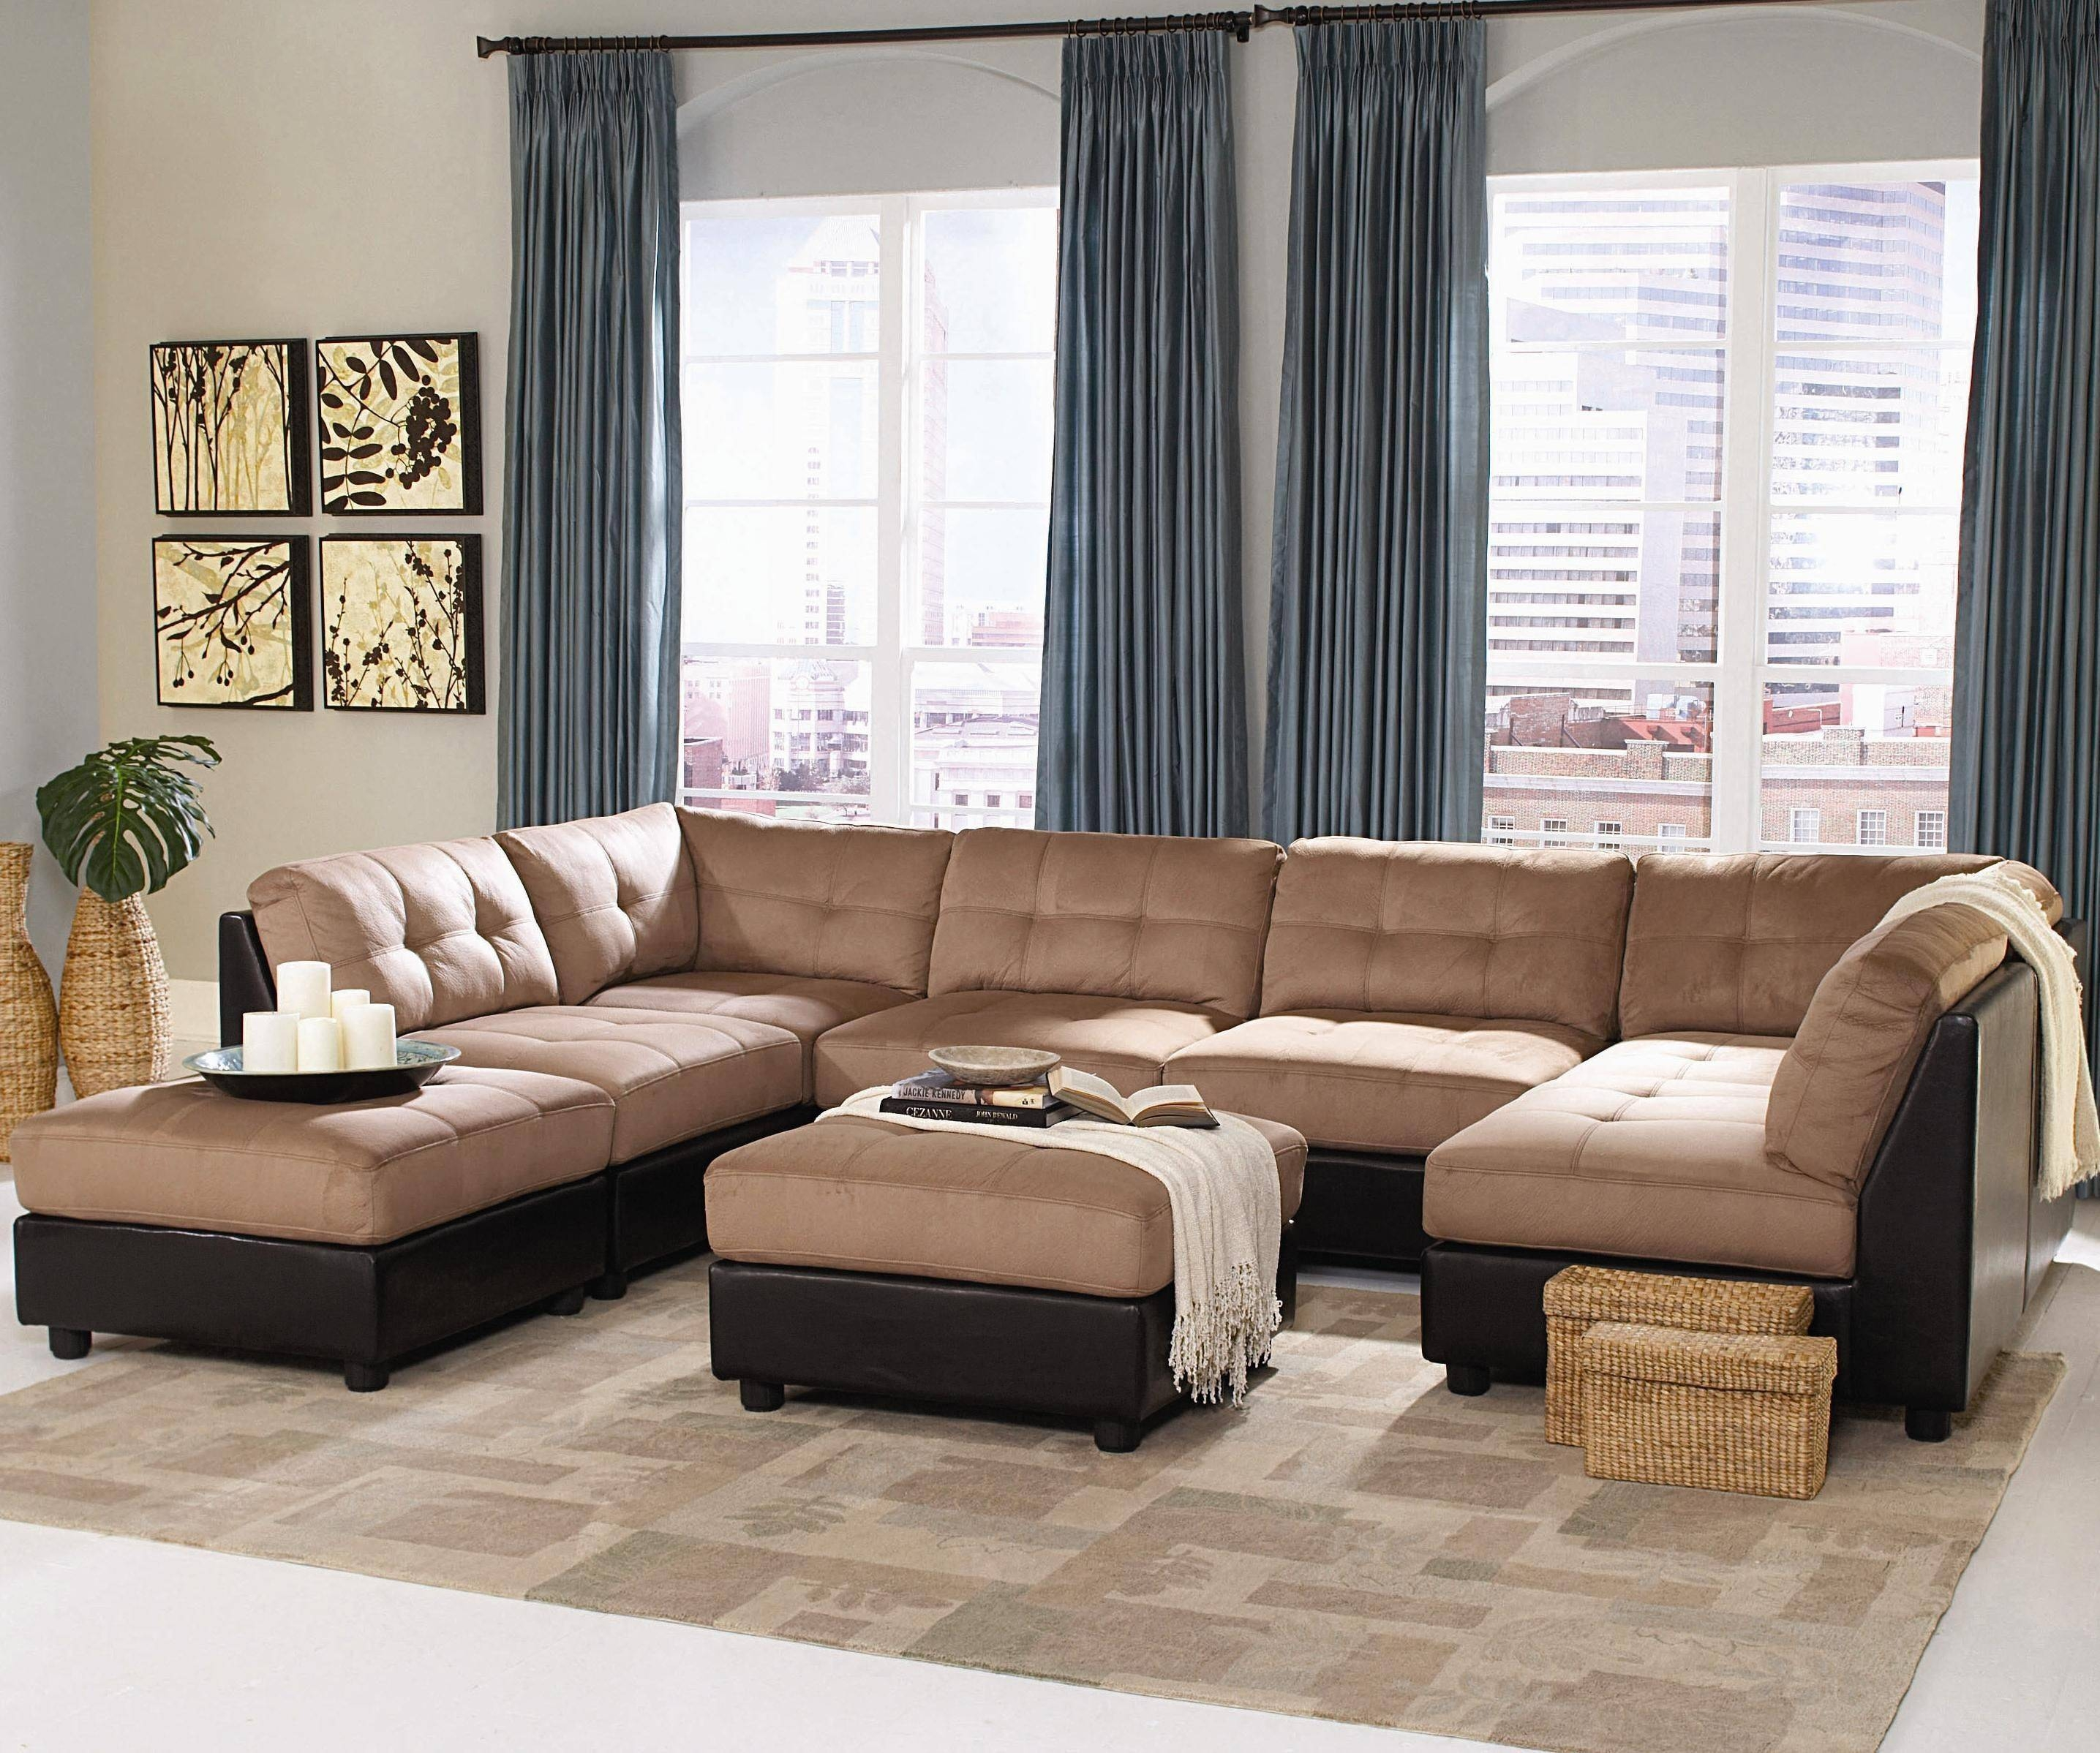 Furniture Home: The Most Popular Sears Sectional Sofa 53 With pertaining to Elegant Sectional Sofas (Image 21 of 30)